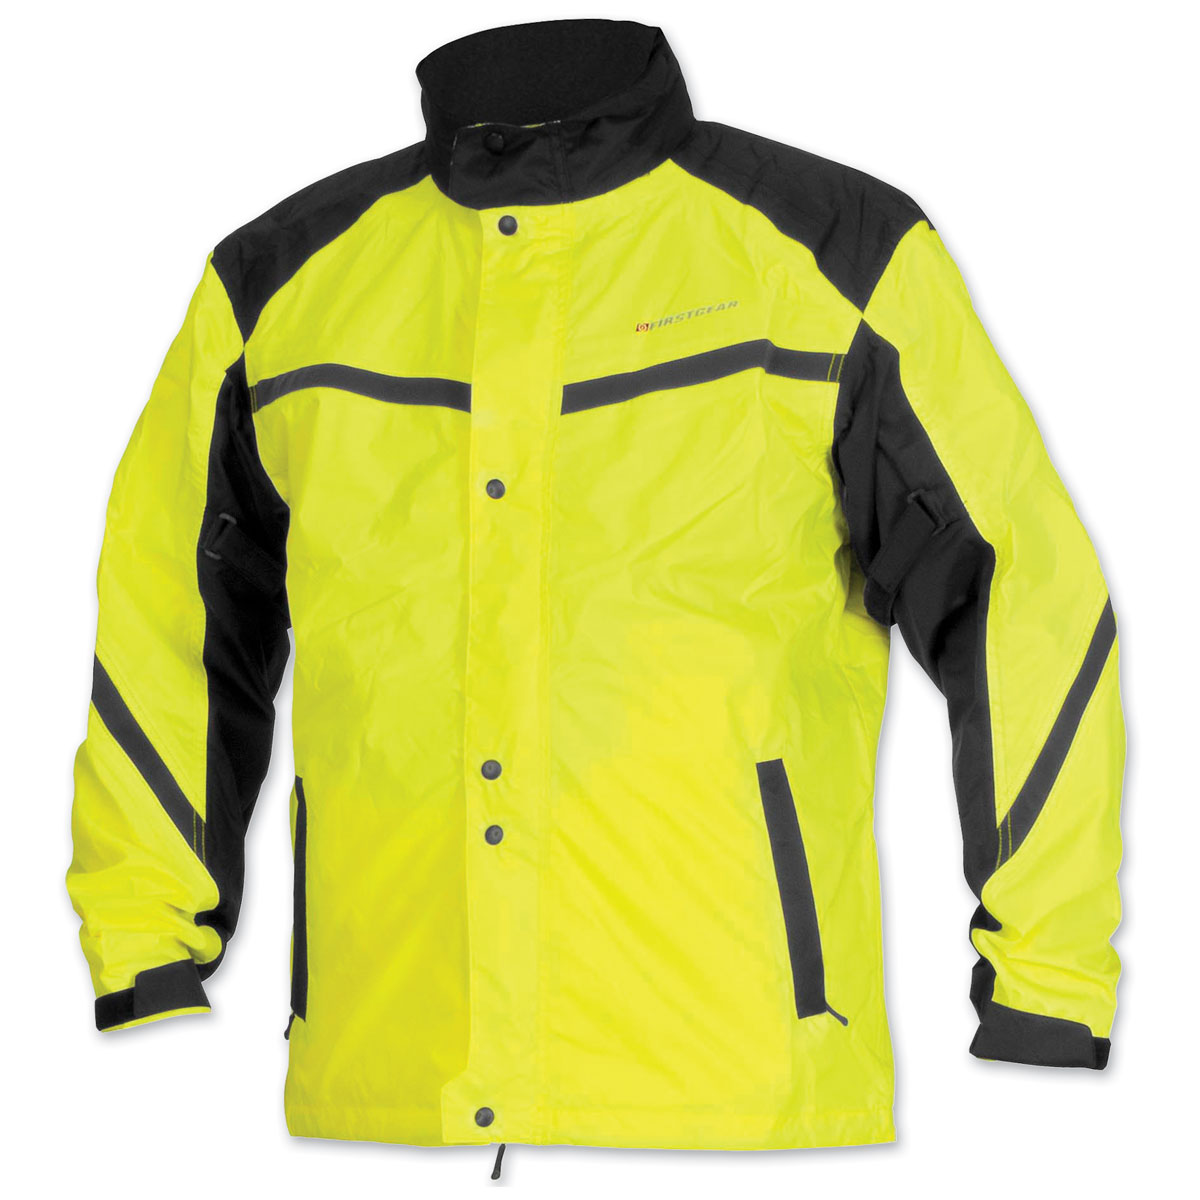 Firstgear Men's Sierra DayGlo Rain Jacket